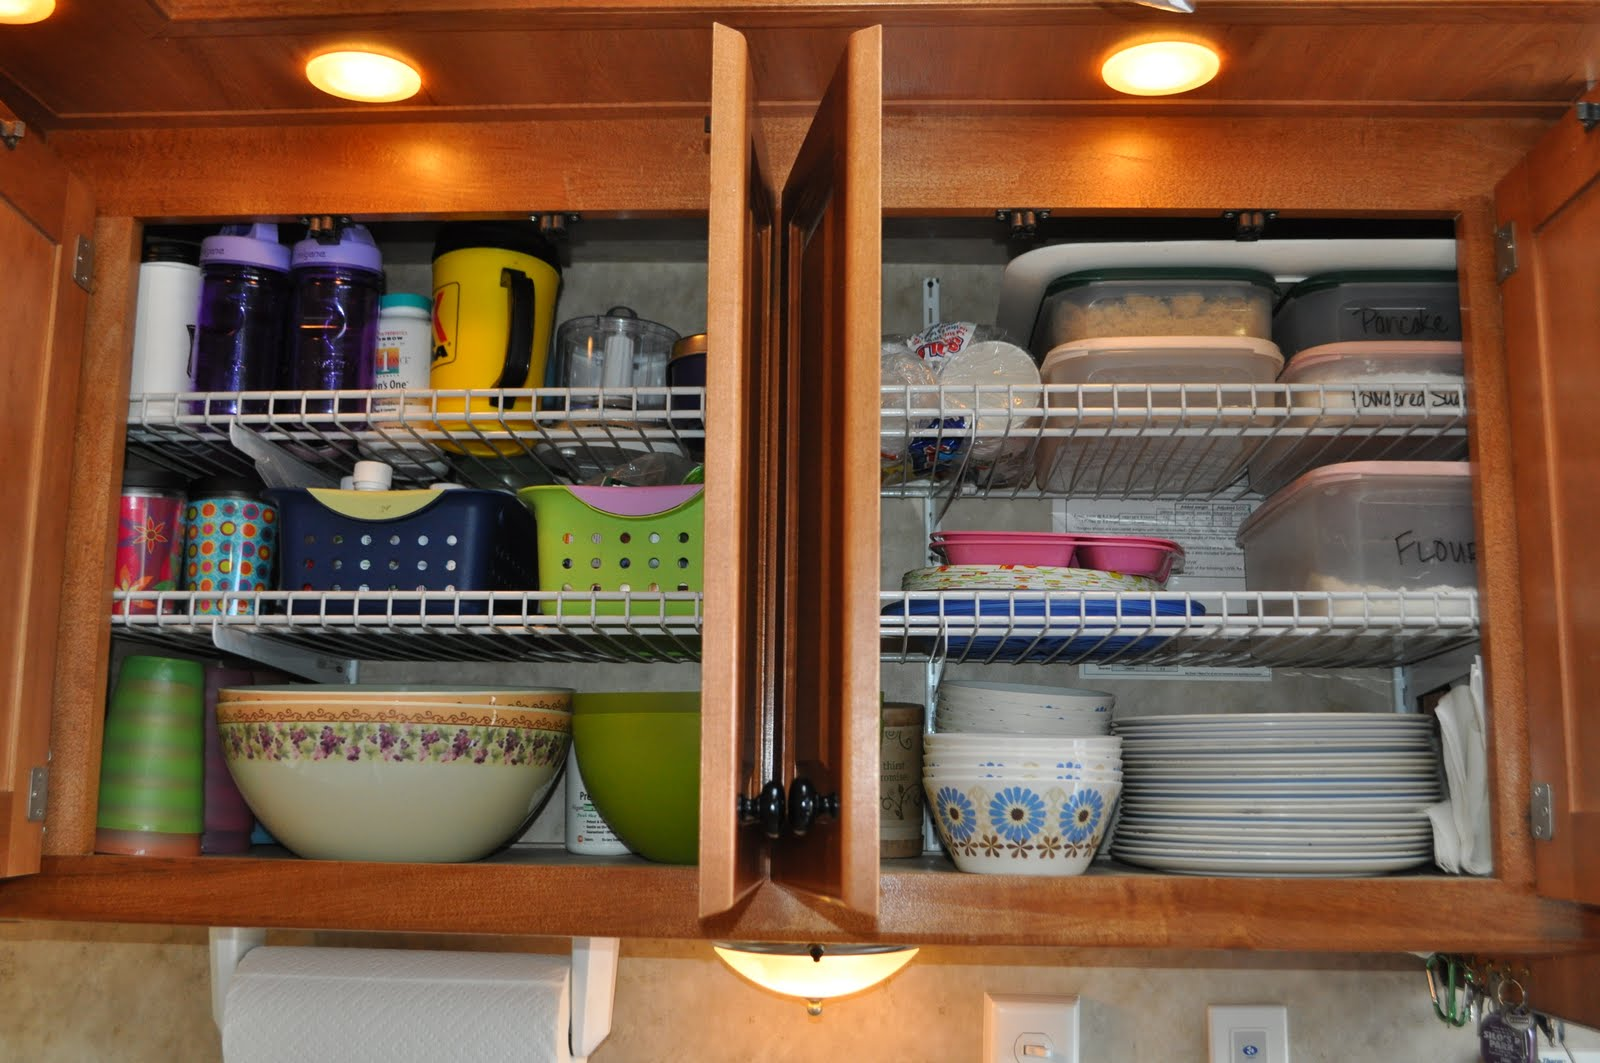 24 Easy RV Organization Tips - RVshare.com Ideas Small Camper Kitchen on large galley kitchen ideas, rv bathroom ideas, office kitchen ideas, country kitchen makeover ideas, kitchen wine bar ideas, boat kitchen ideas, modern vintage kitchen ideas, camper organizational tips, kitchen setup ideas, camper living room, simple kitchen ideas, small kitchen set up ideas, pier one kitchen ideas, camp kitchen ideas, hunter kitchen ideas, home kitchen ideas, rv storage ideas, trailer kitchen ideas, small apartment kitchen ideas, cabin kitchen ideas,